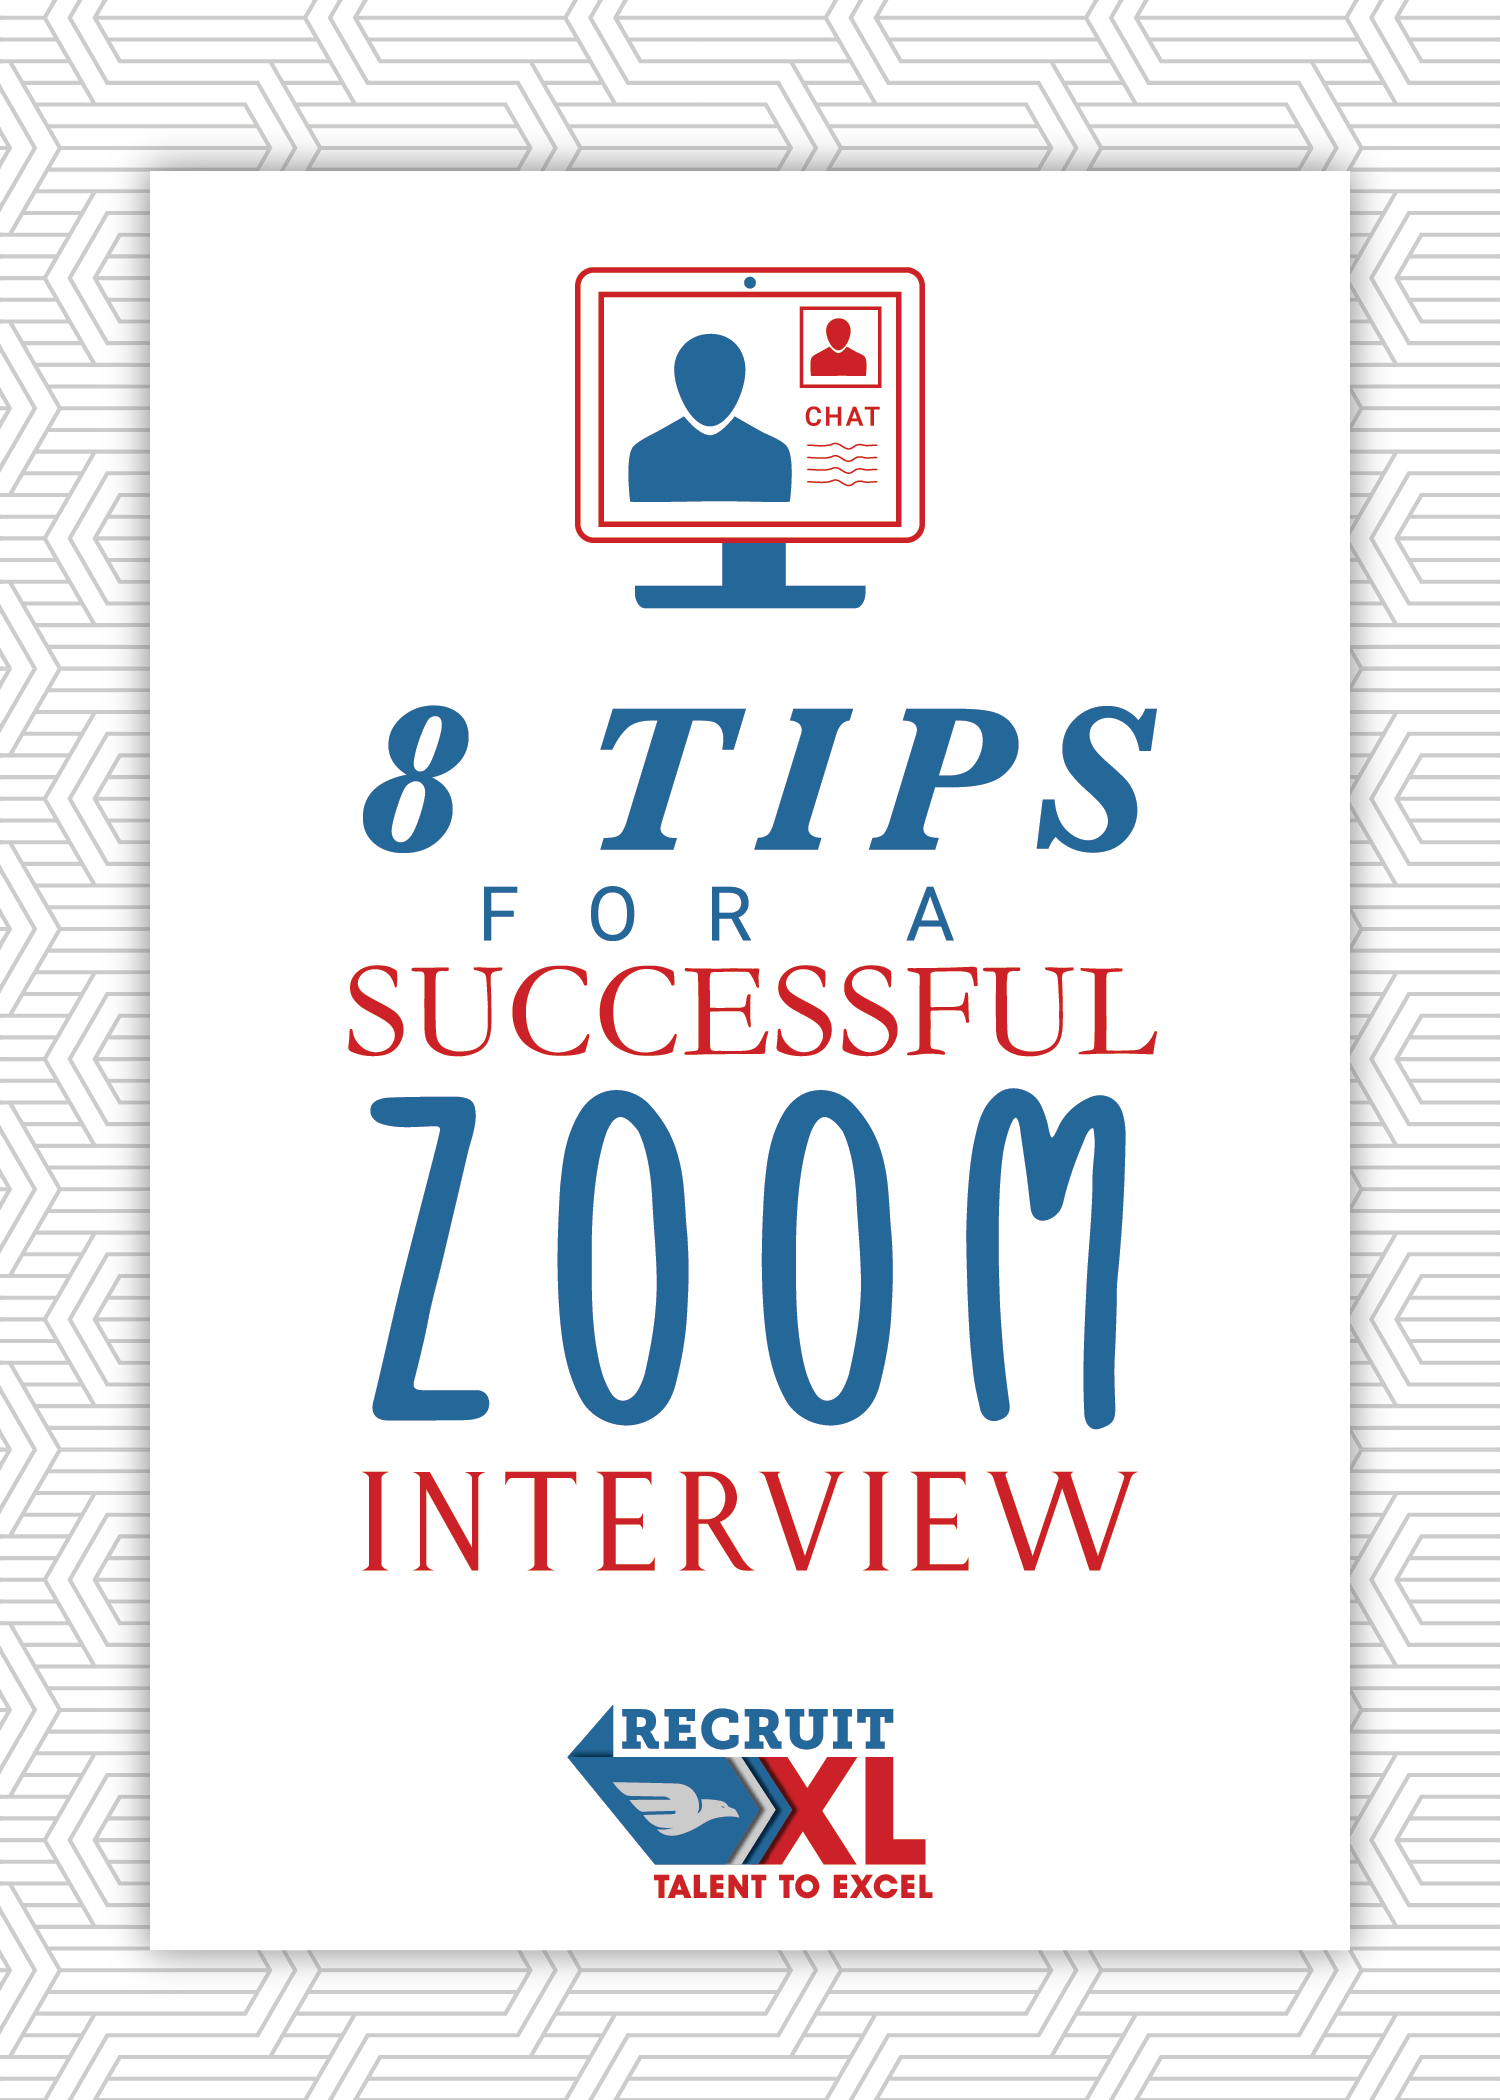 Recruit XL Interview Tips